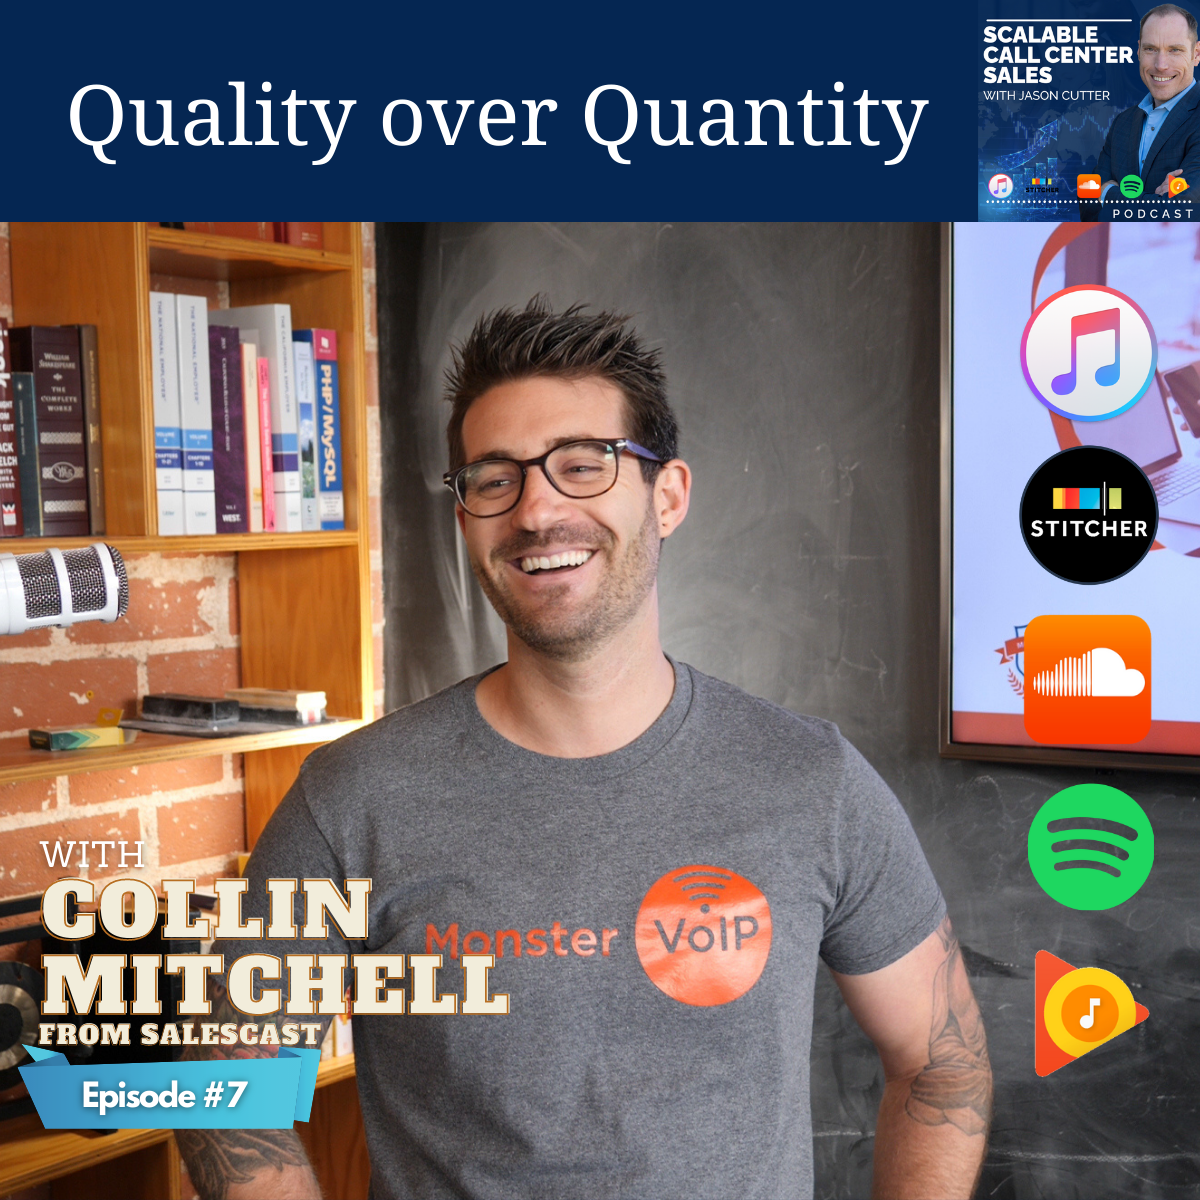 You are currently viewing [007] Quality over Quantity, with Collin Mitchell